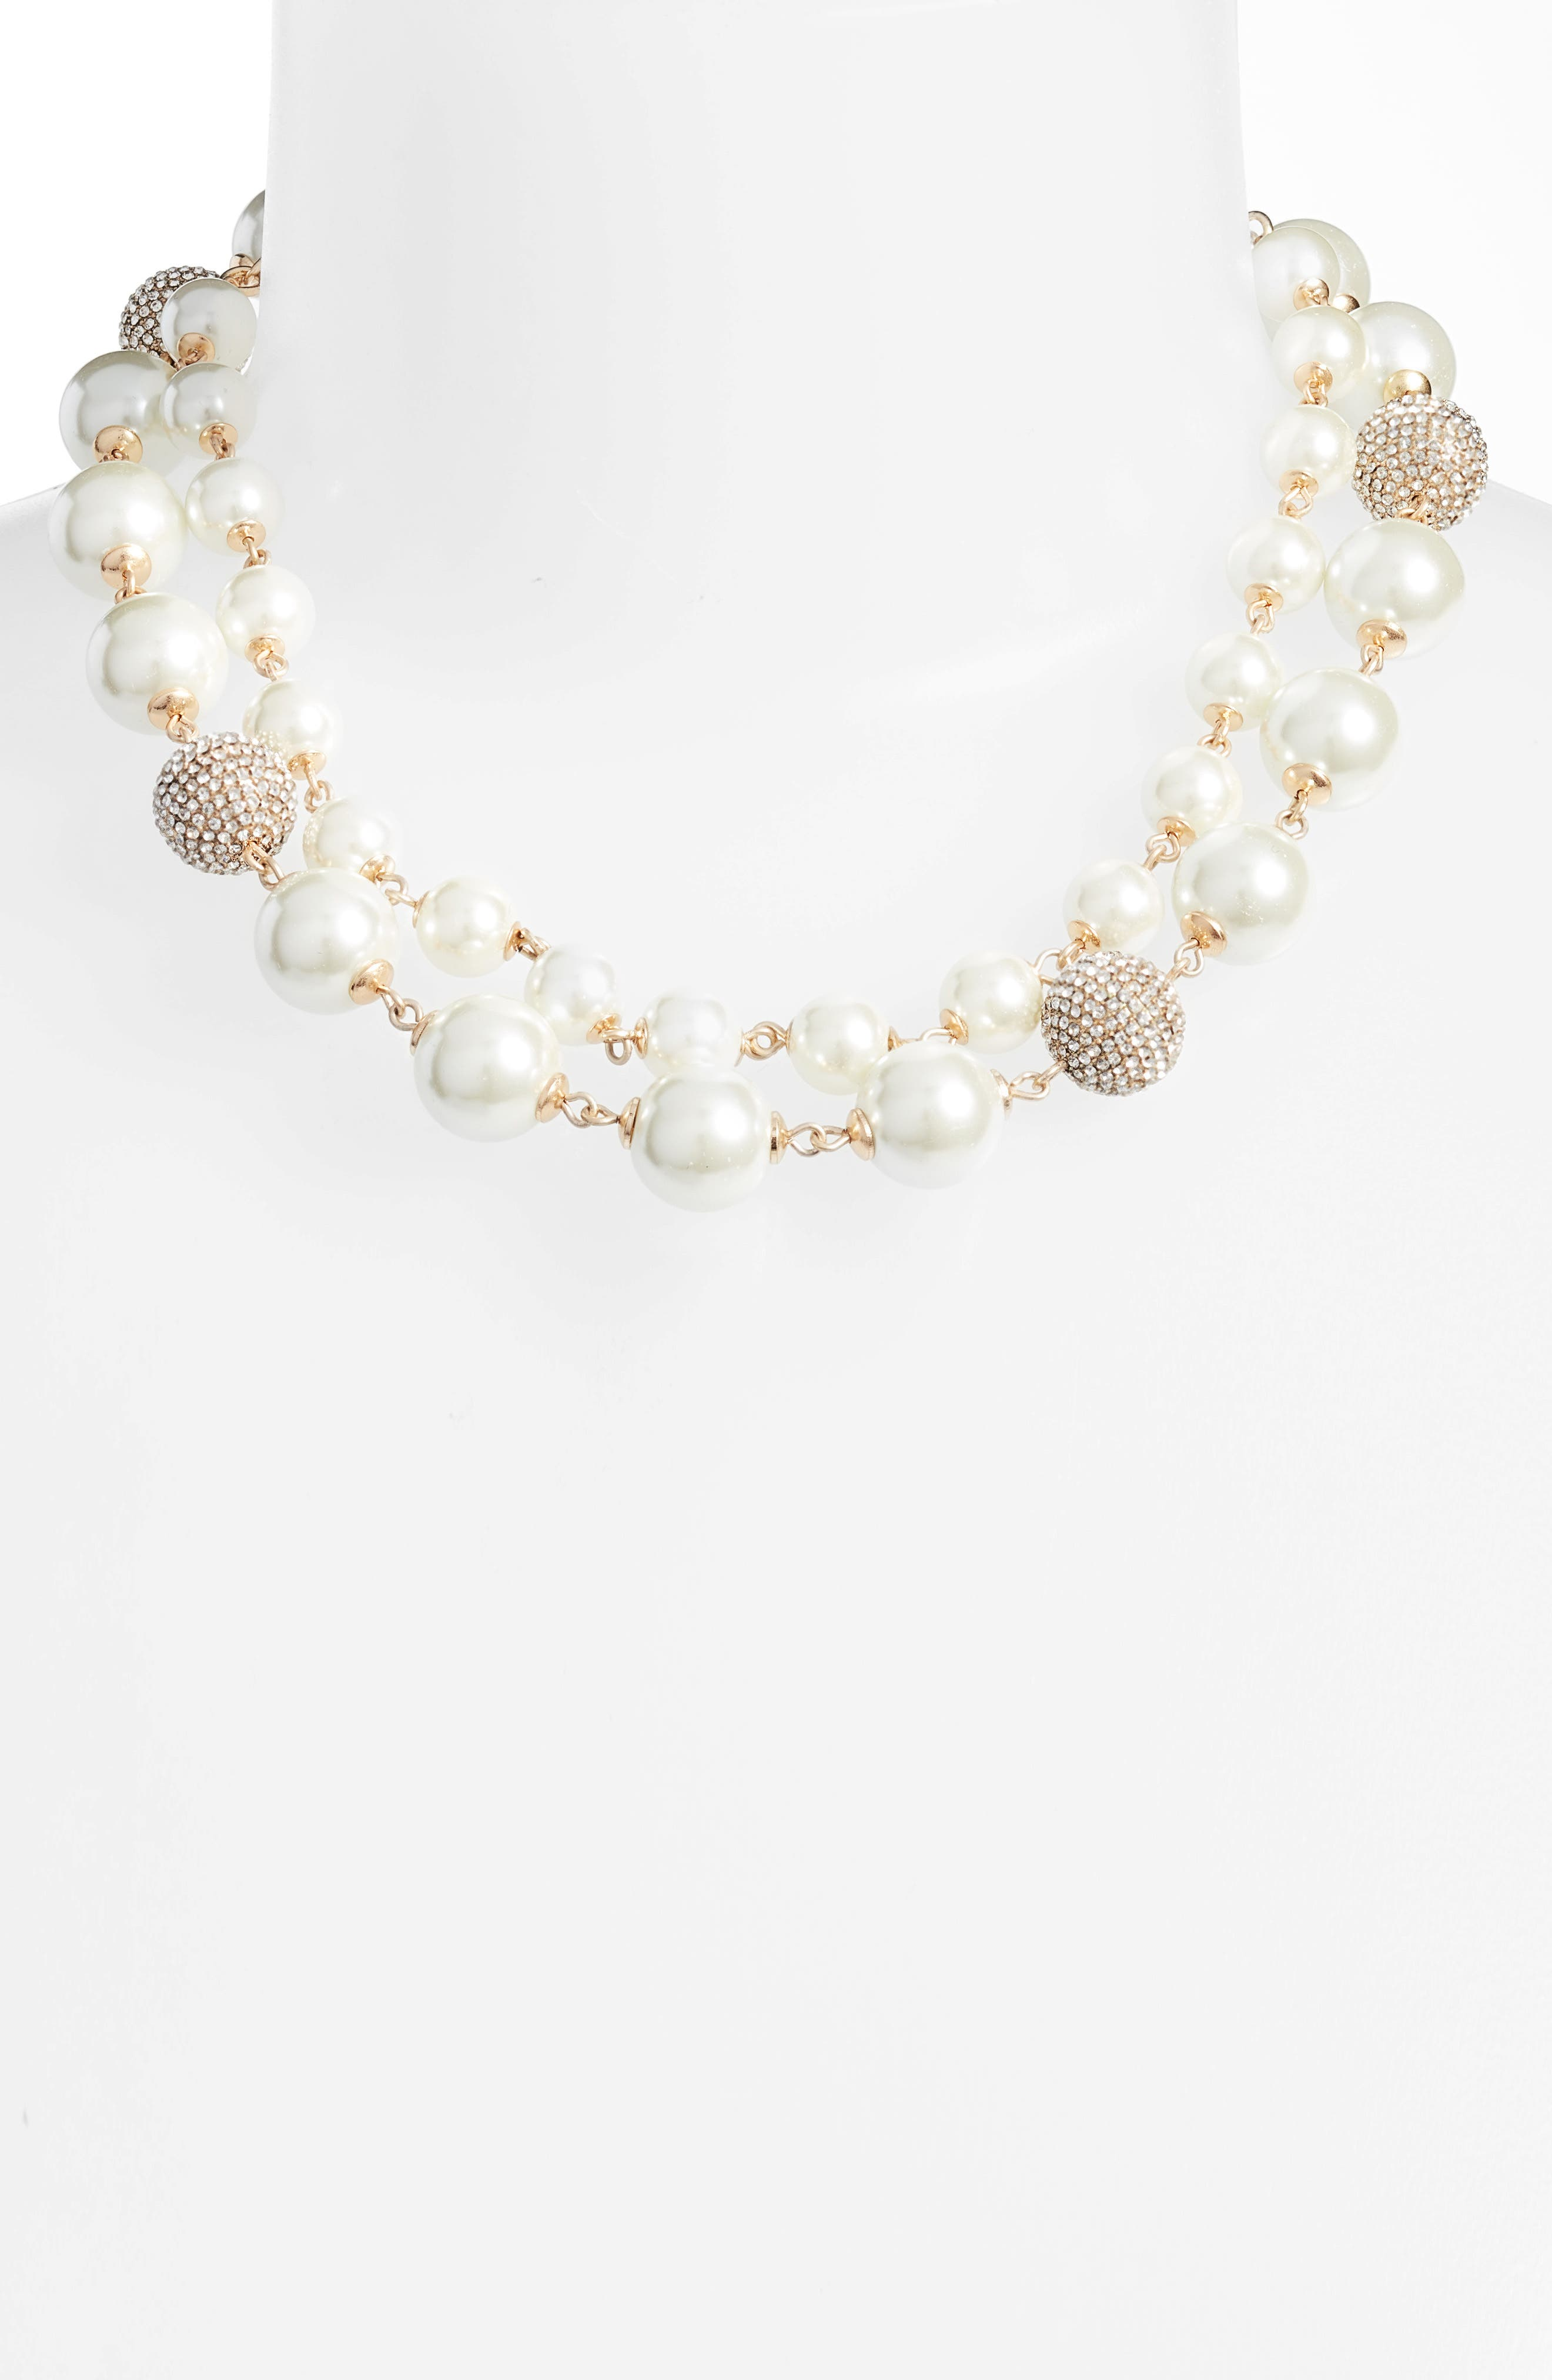 Multistrand Imitation Pearl Necklace,                             Alternate thumbnail 2, color,                             Gold/ Pearl/ Crystal